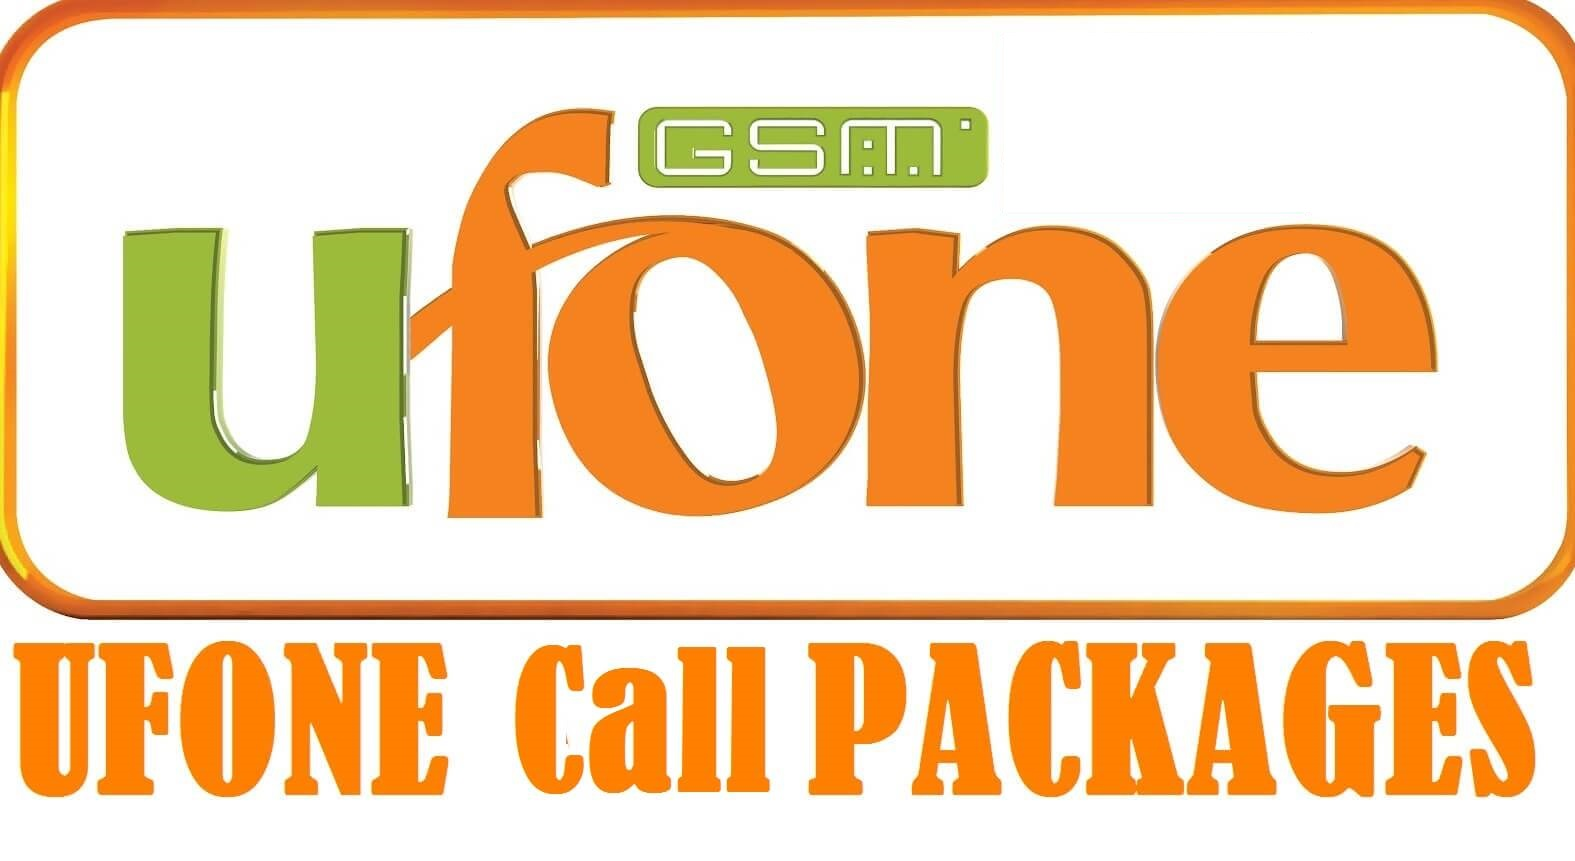 Latest Ufone Calls Packages in 2021